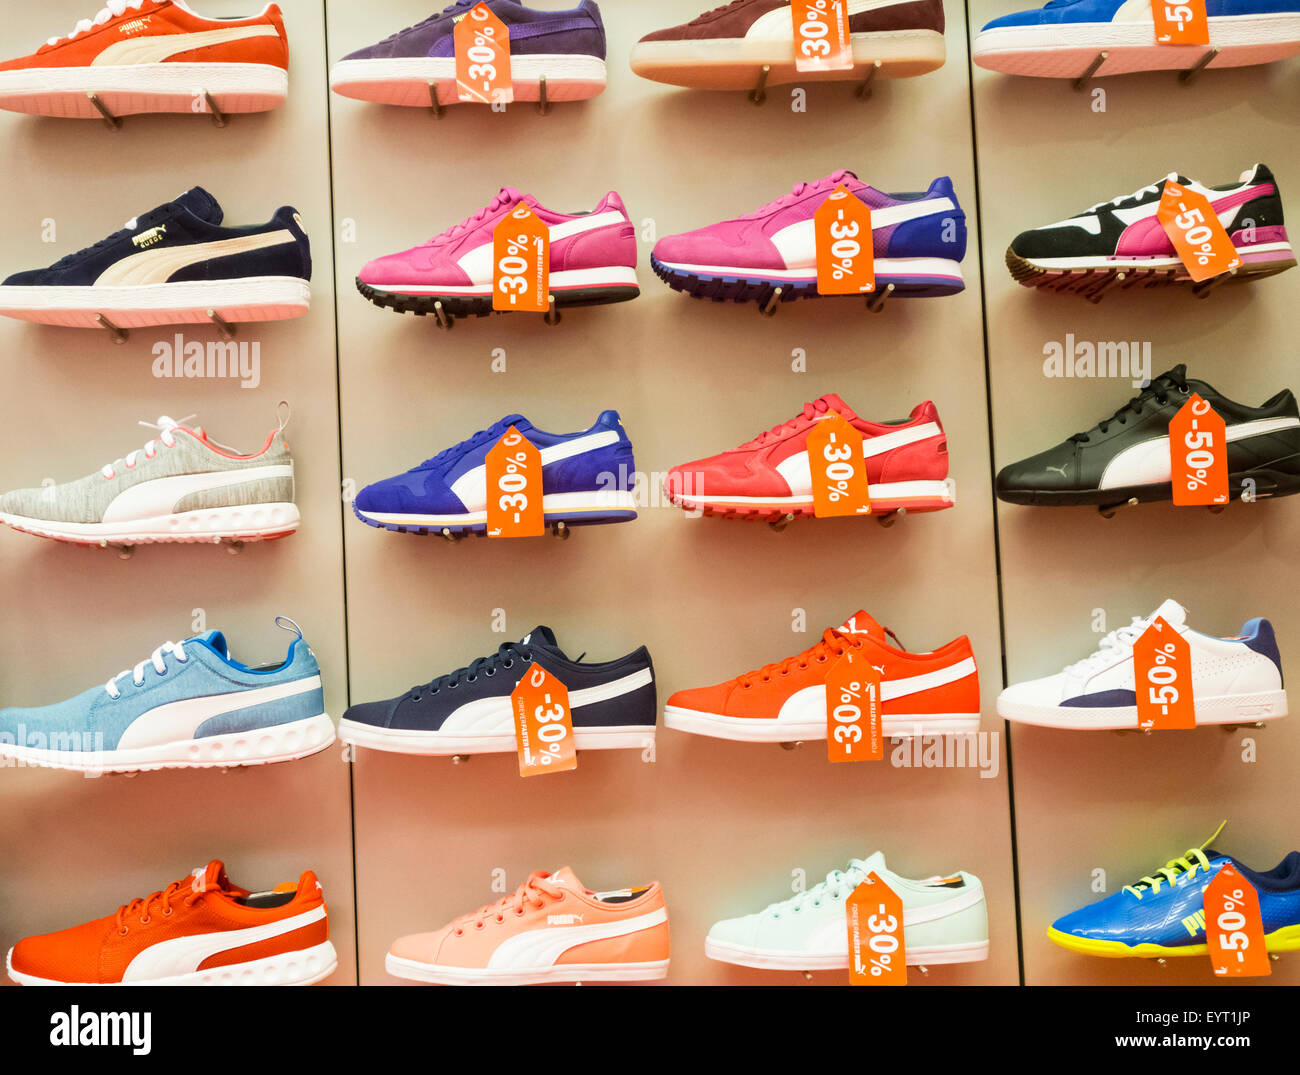 Puma training shoes display in sports store. - Stock Image 09df29451879